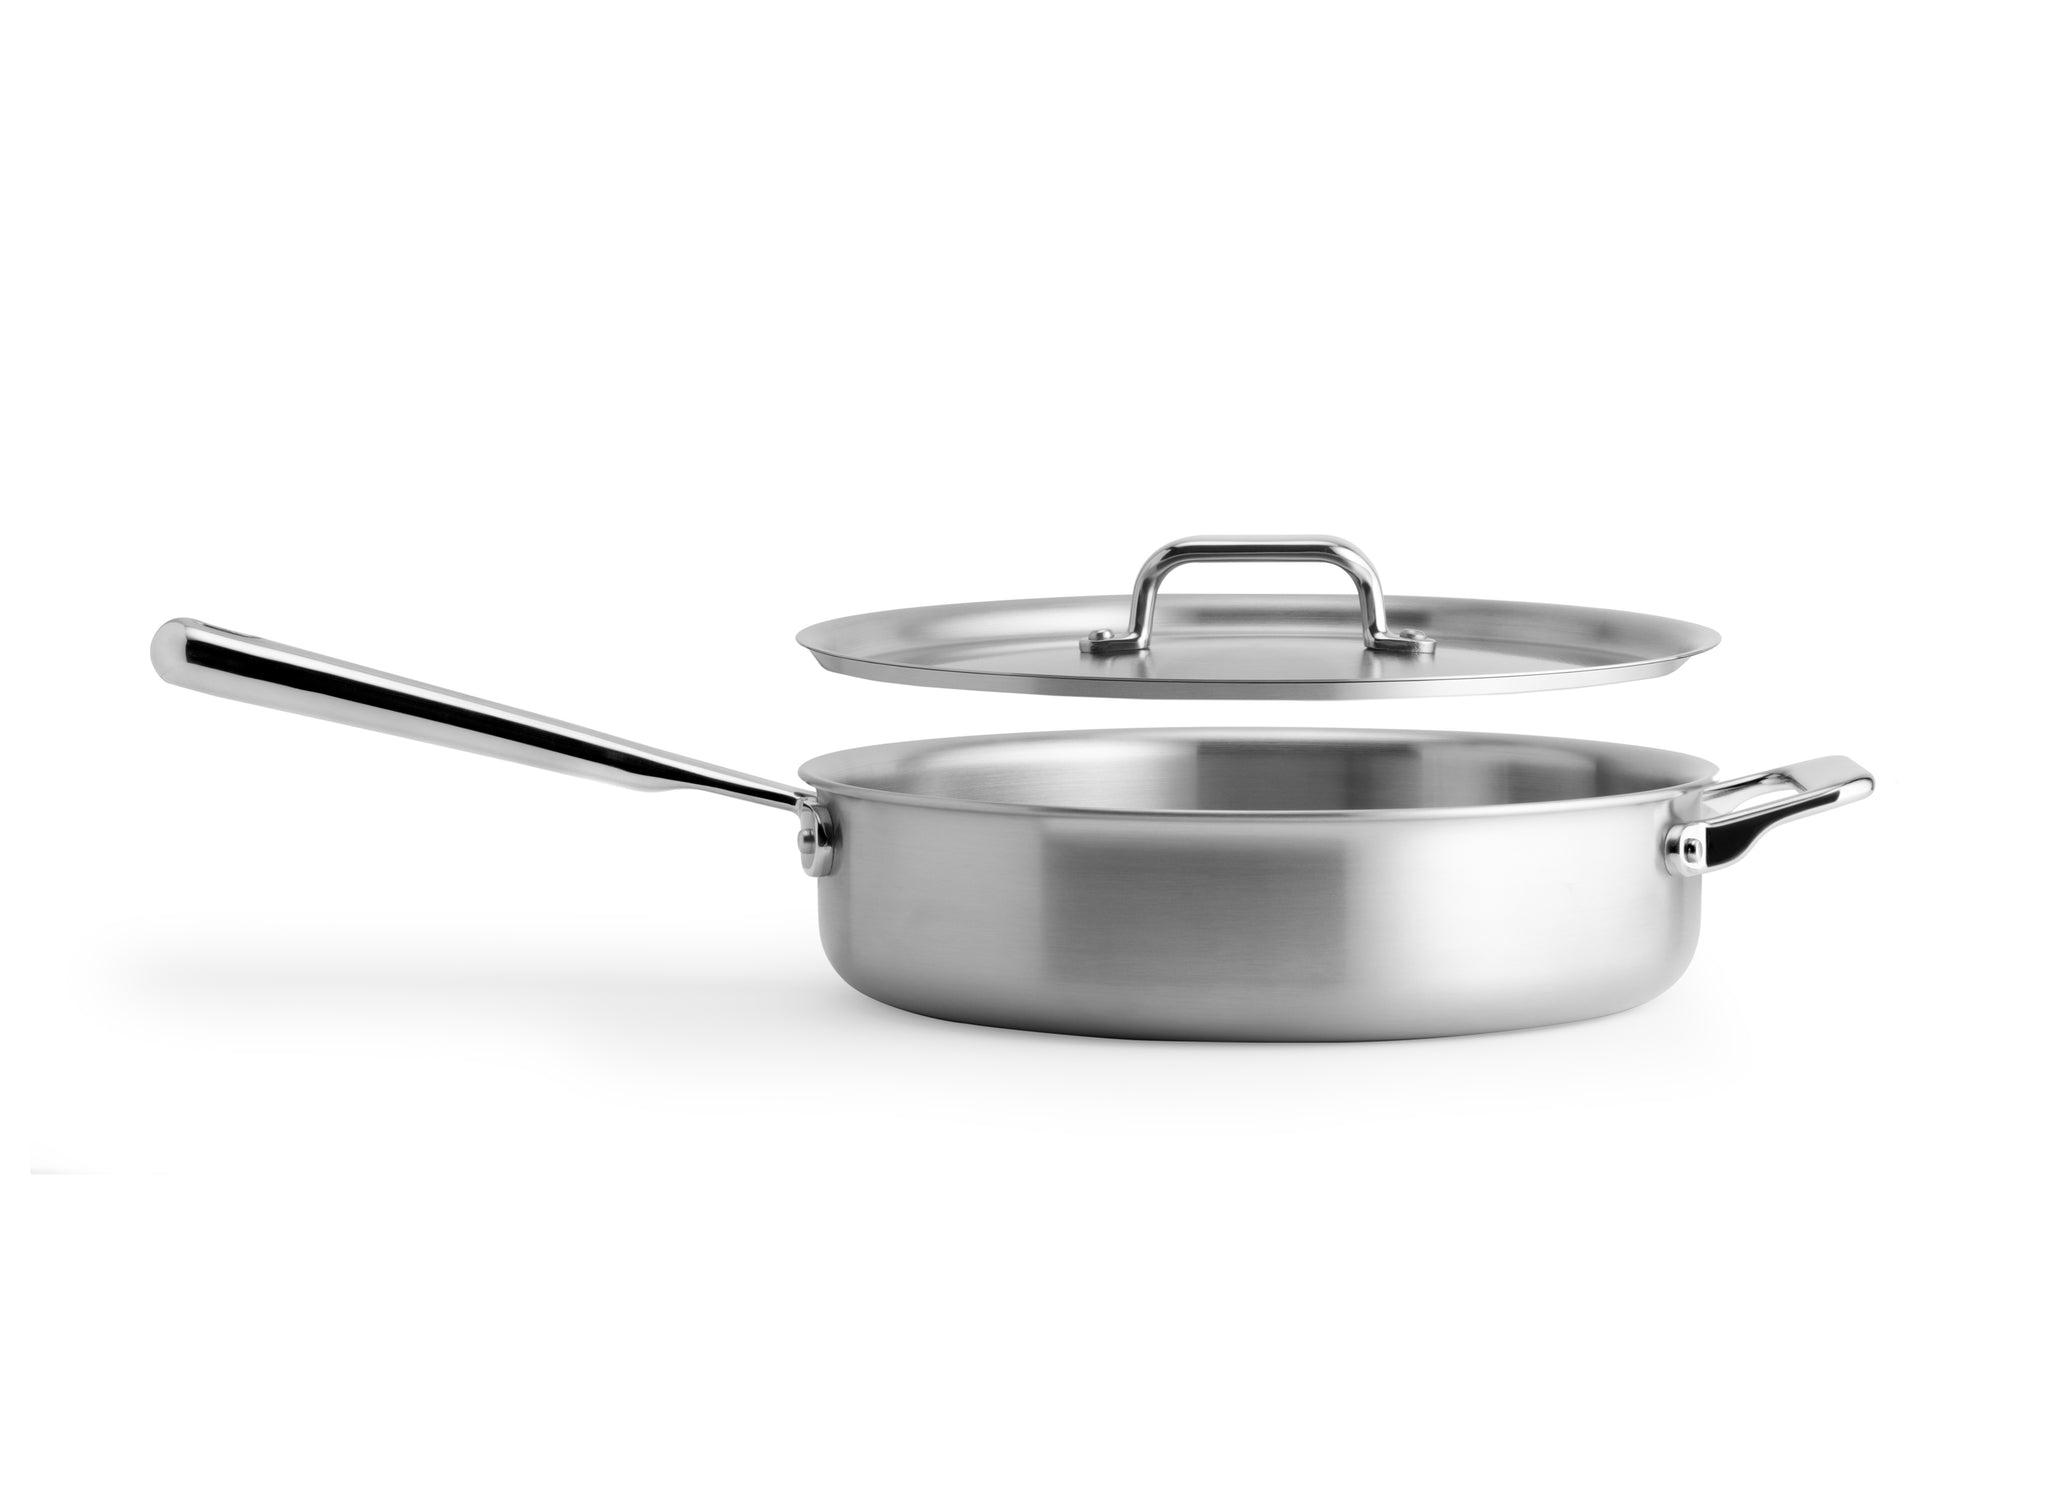 The Misen 3 QT Saute pan is shallow enough to sear and brown, deep enough to pan fry, and wide enough to braise, pouch and steam.